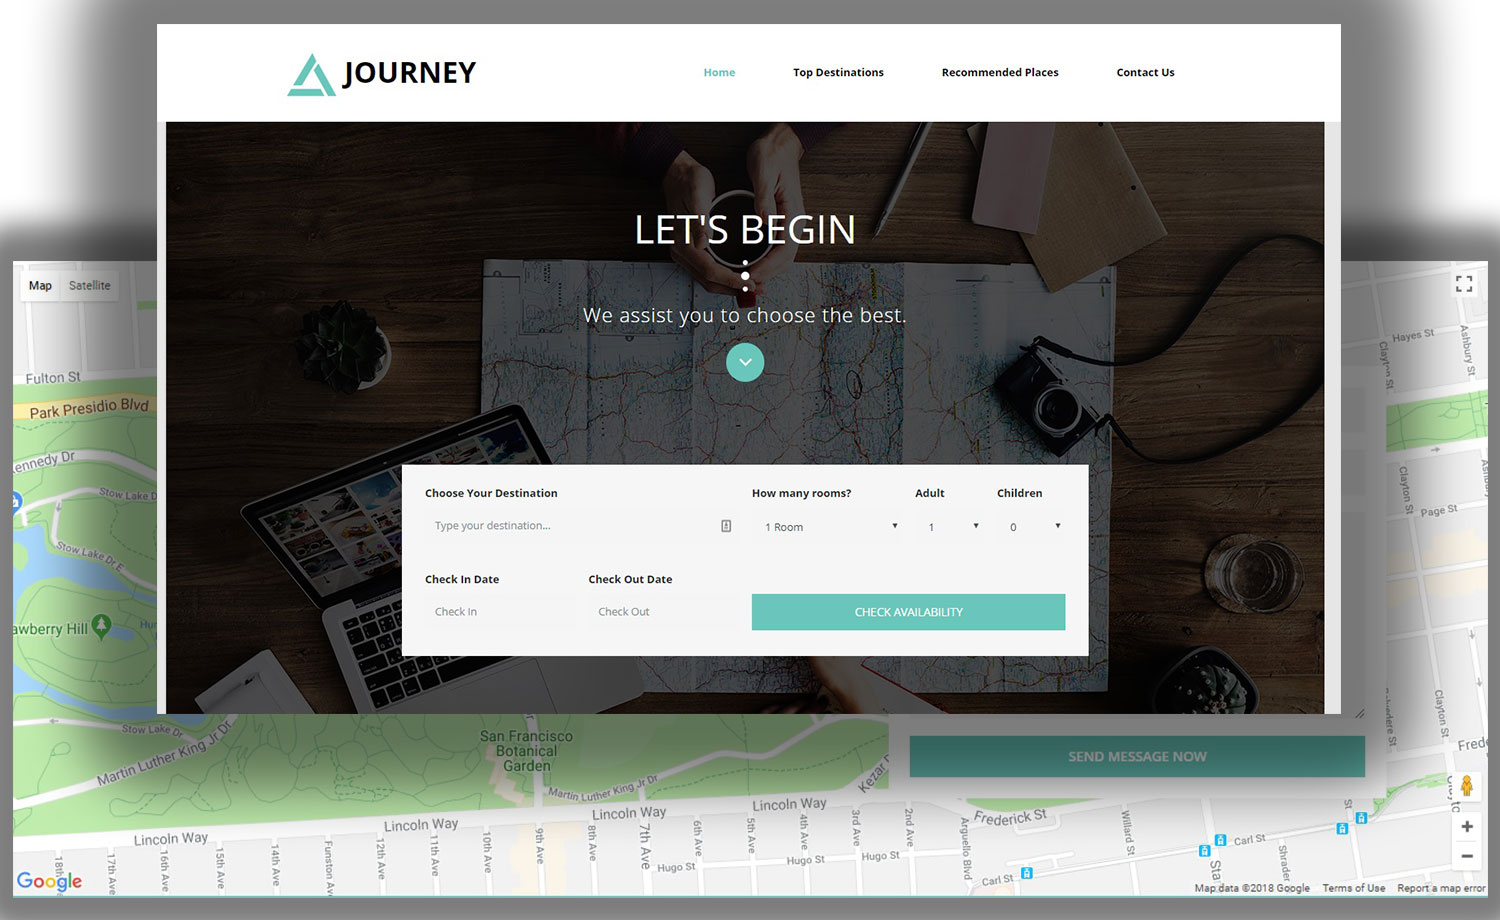 Free Bootstrap 4 Tour Agency Template for Travel Planning ... on windows application template, business application template, mobile application template, apple application template, development application template, google application template, facebook application template, microsoft application template, driver application template, html application template,